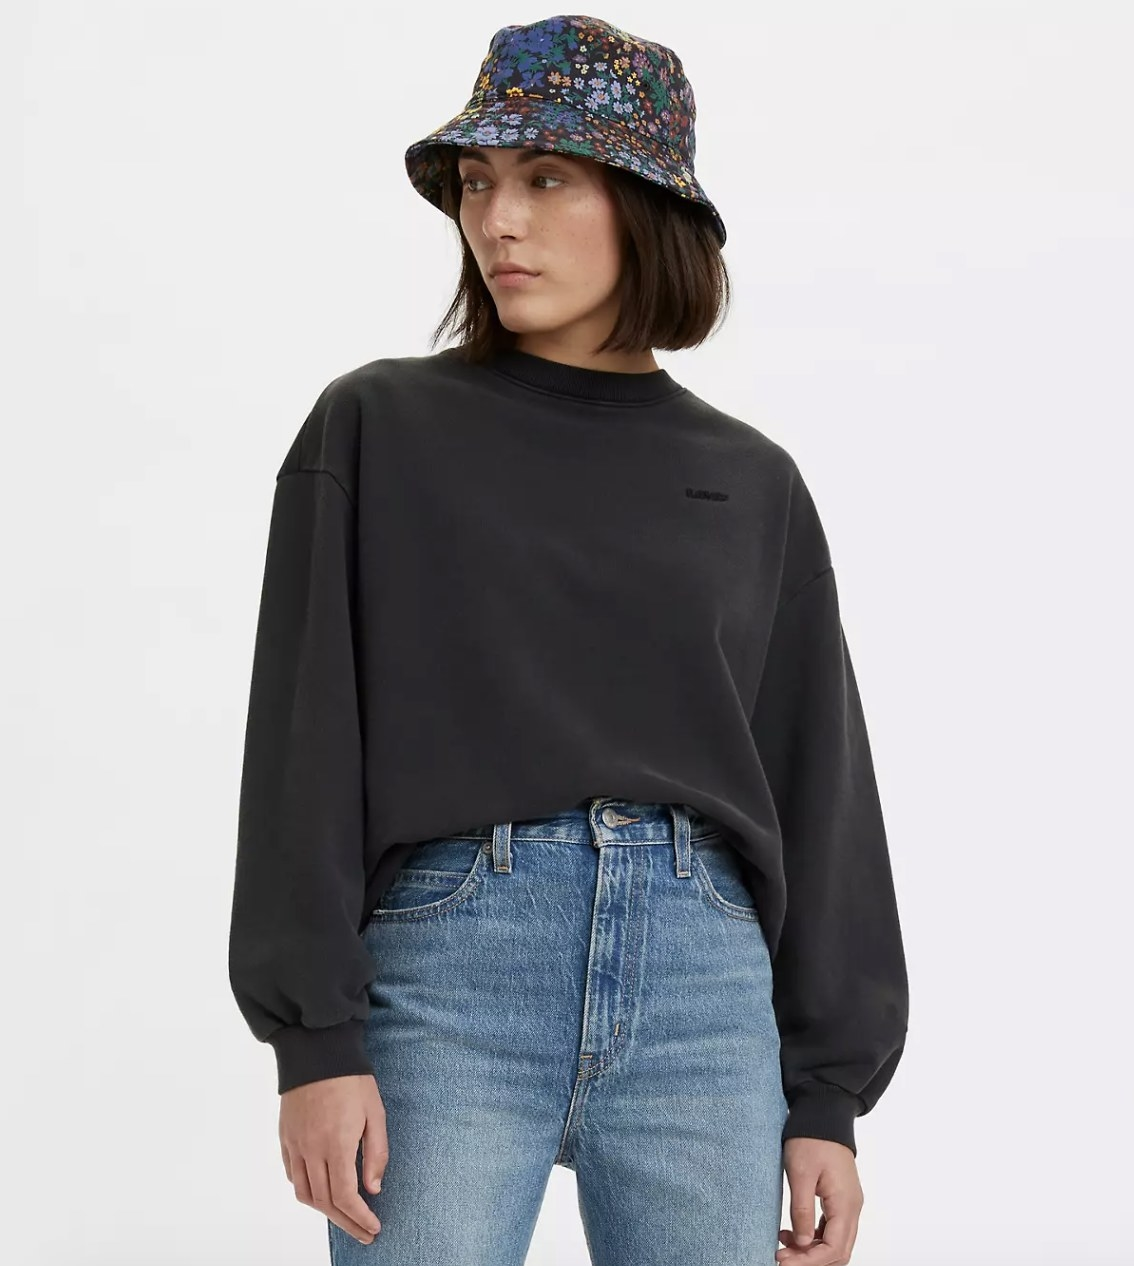 model wearing the crewneck sweatshirt in black with jeans and a floral bucket hat